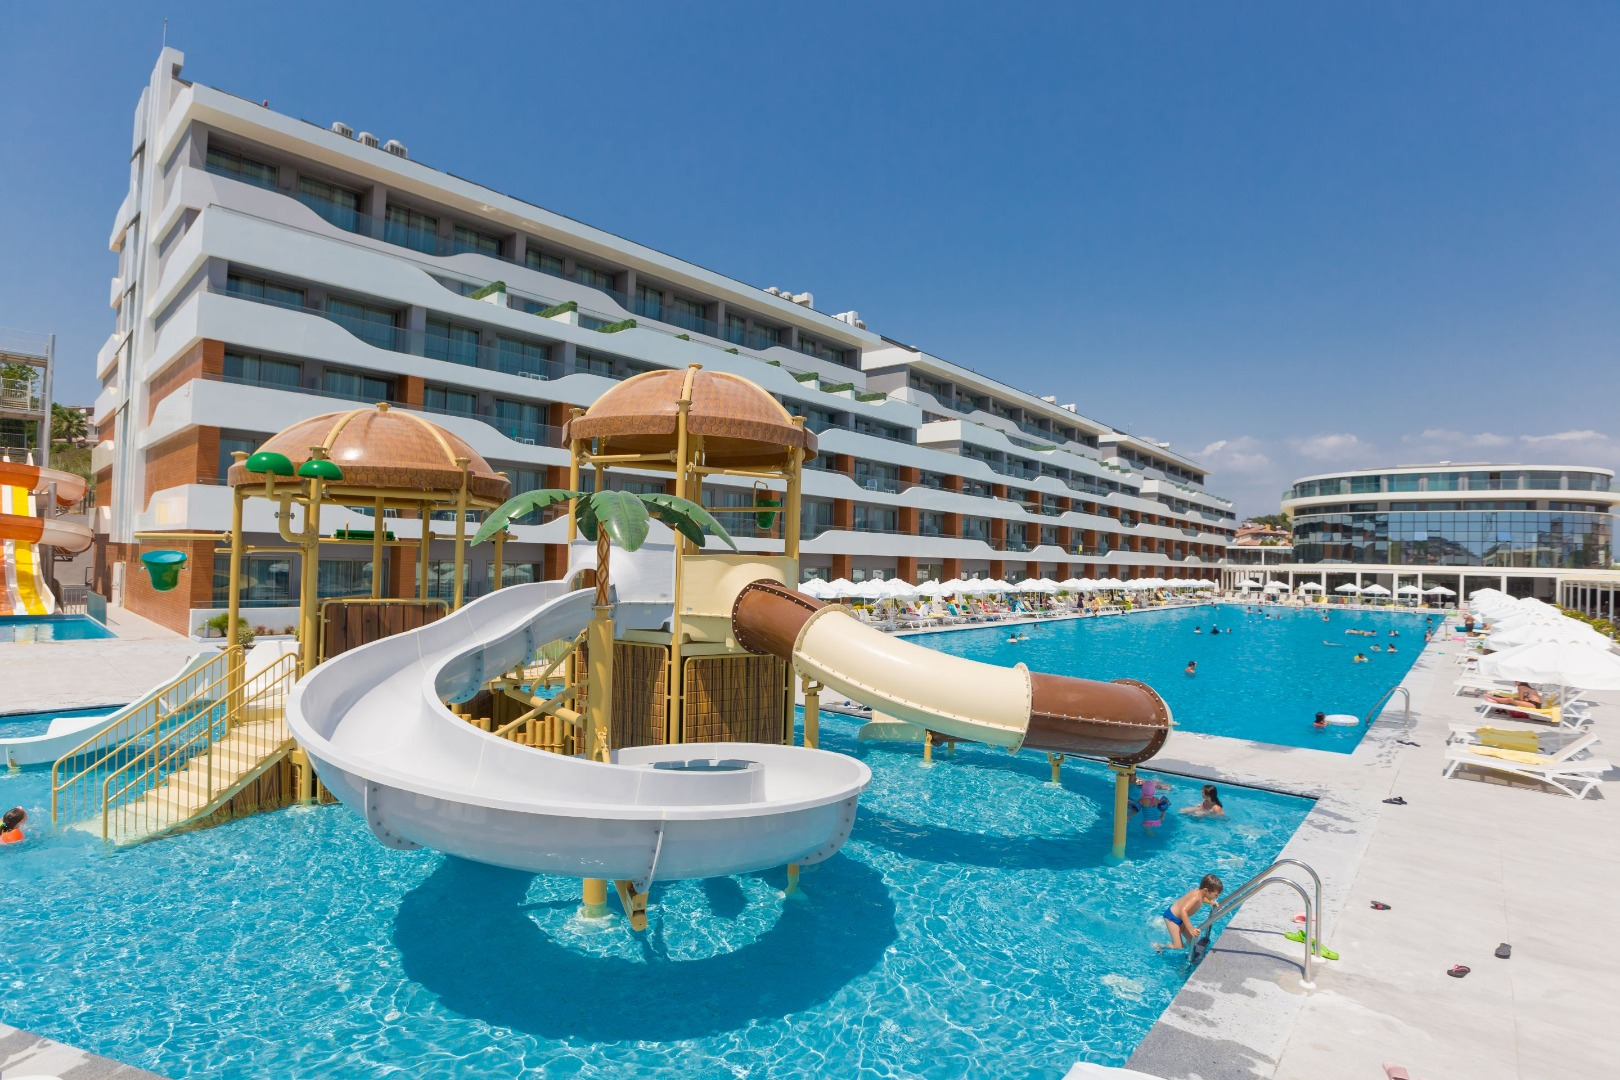 VİCTORY BE MİNE HOTEL